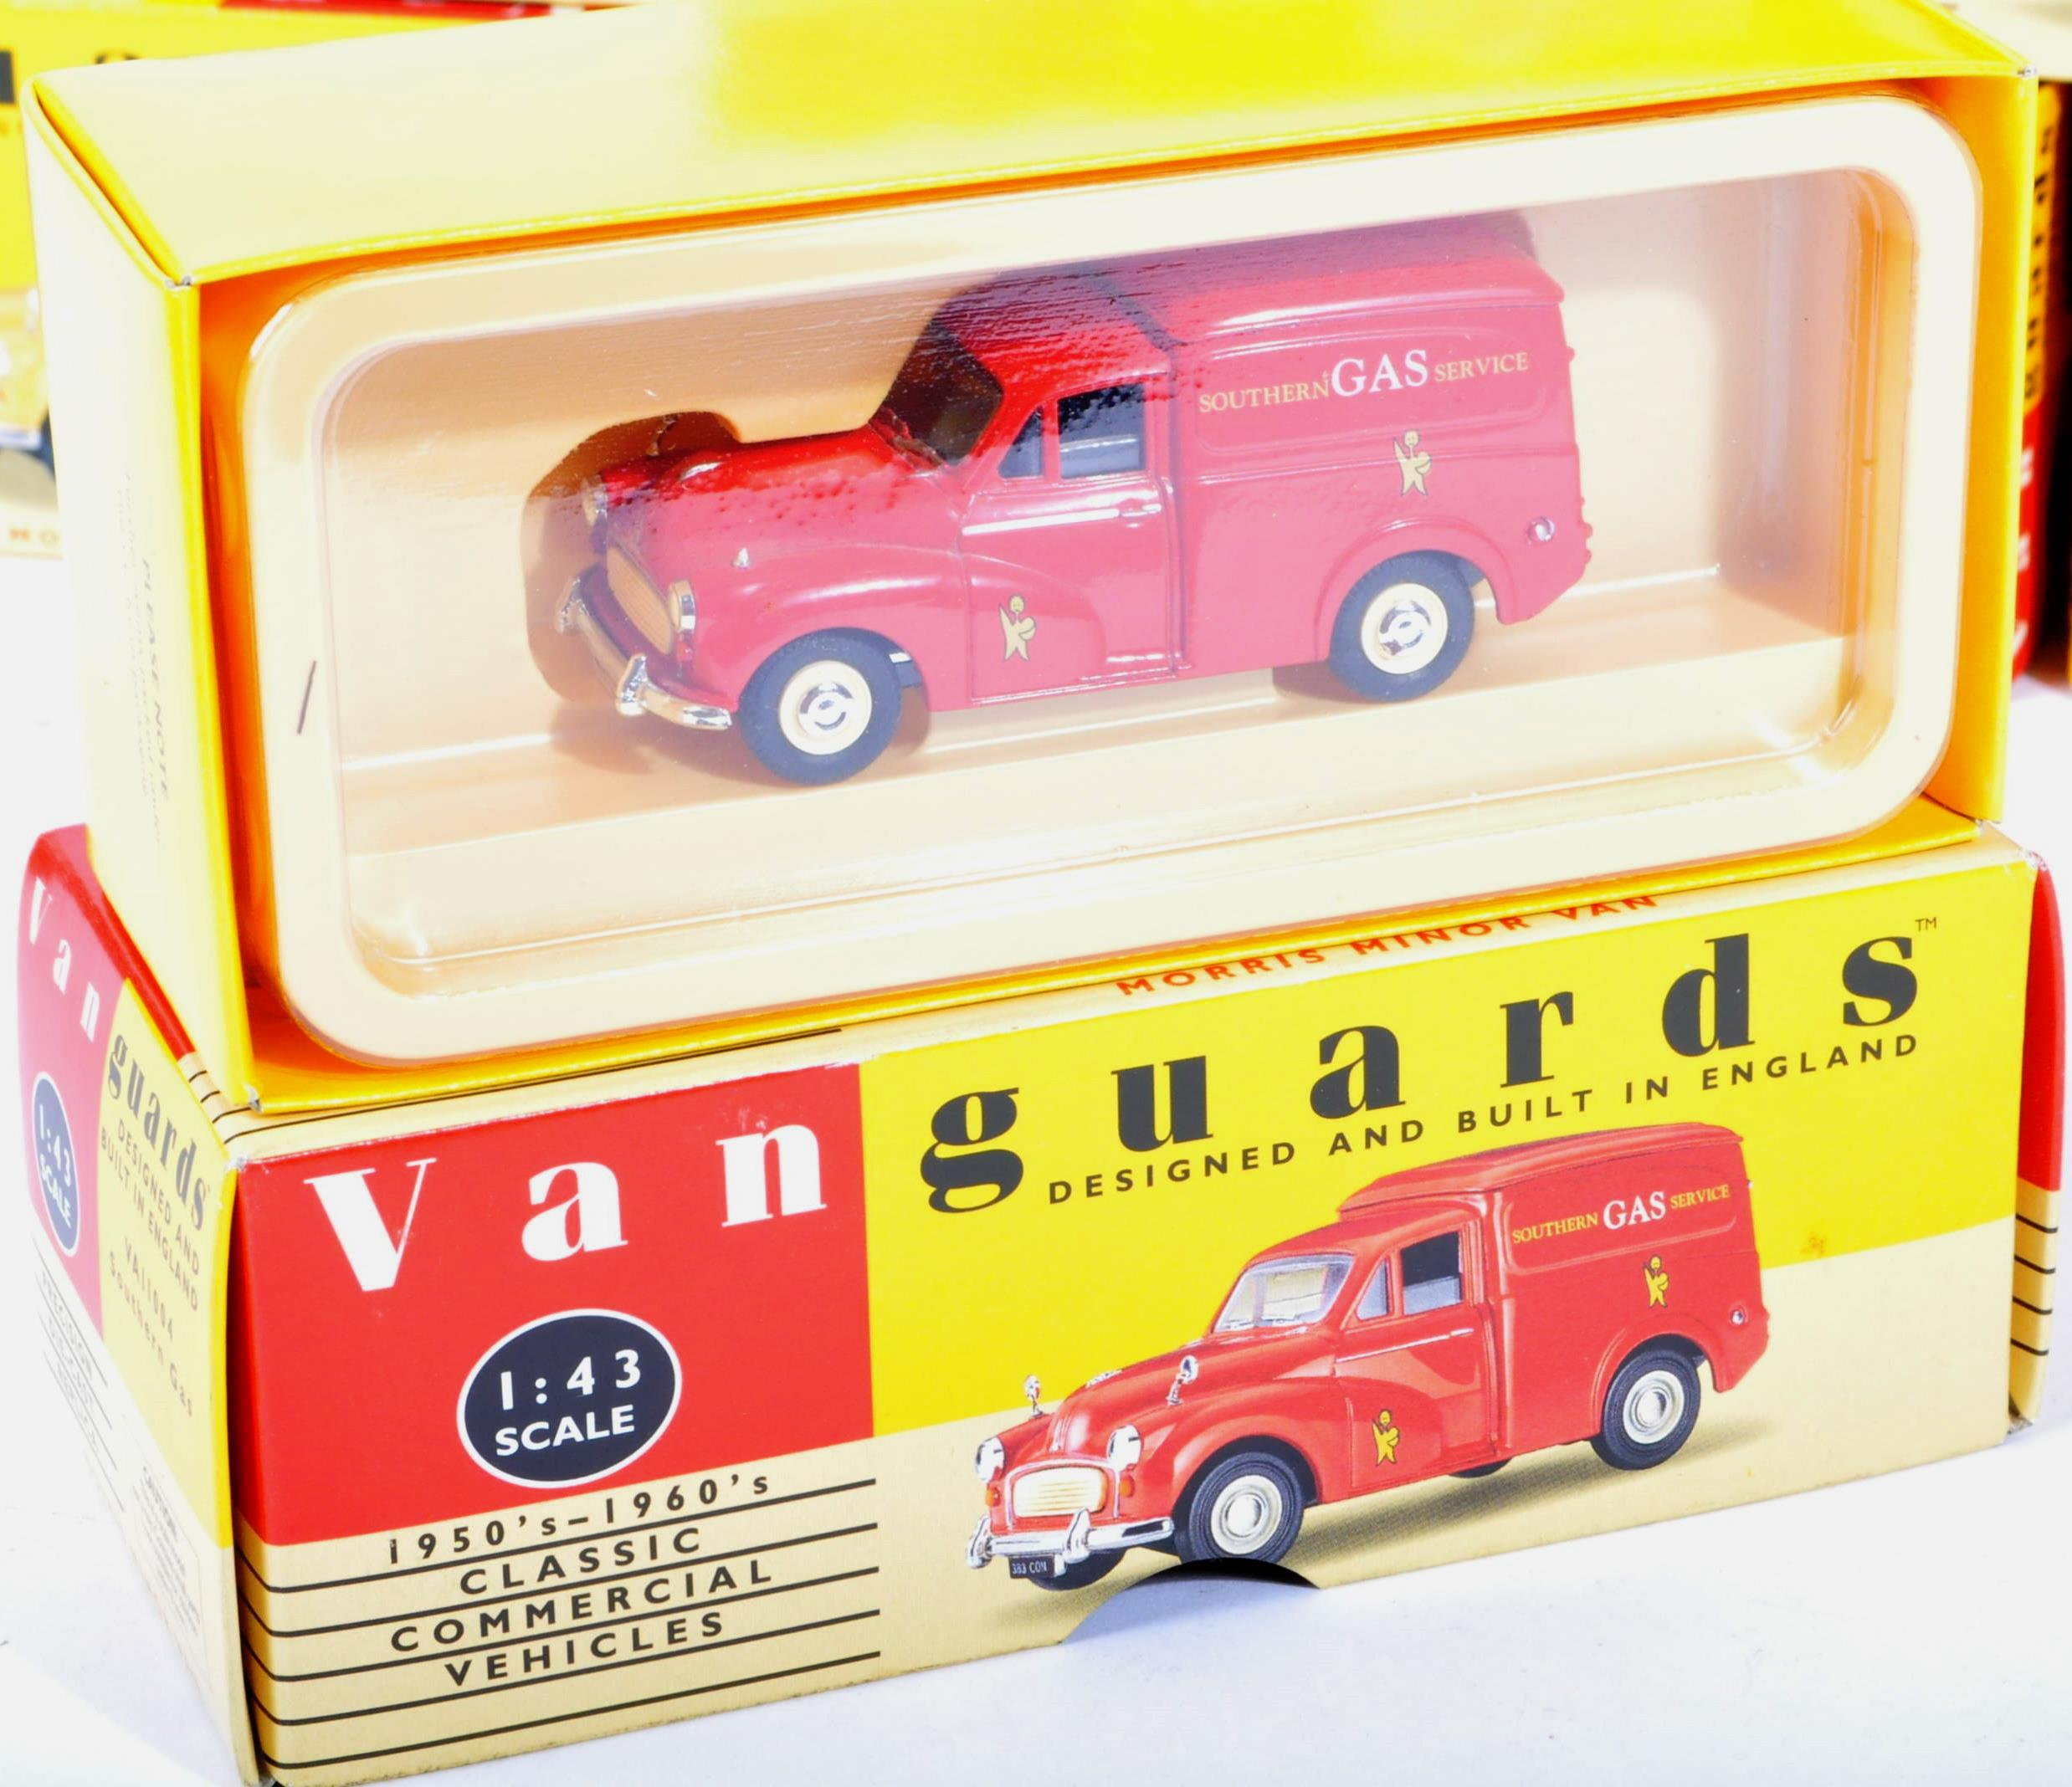 COLLECTION OF X10 LLEDO VANGUARDS DIECAST MODELS - Image 2 of 5